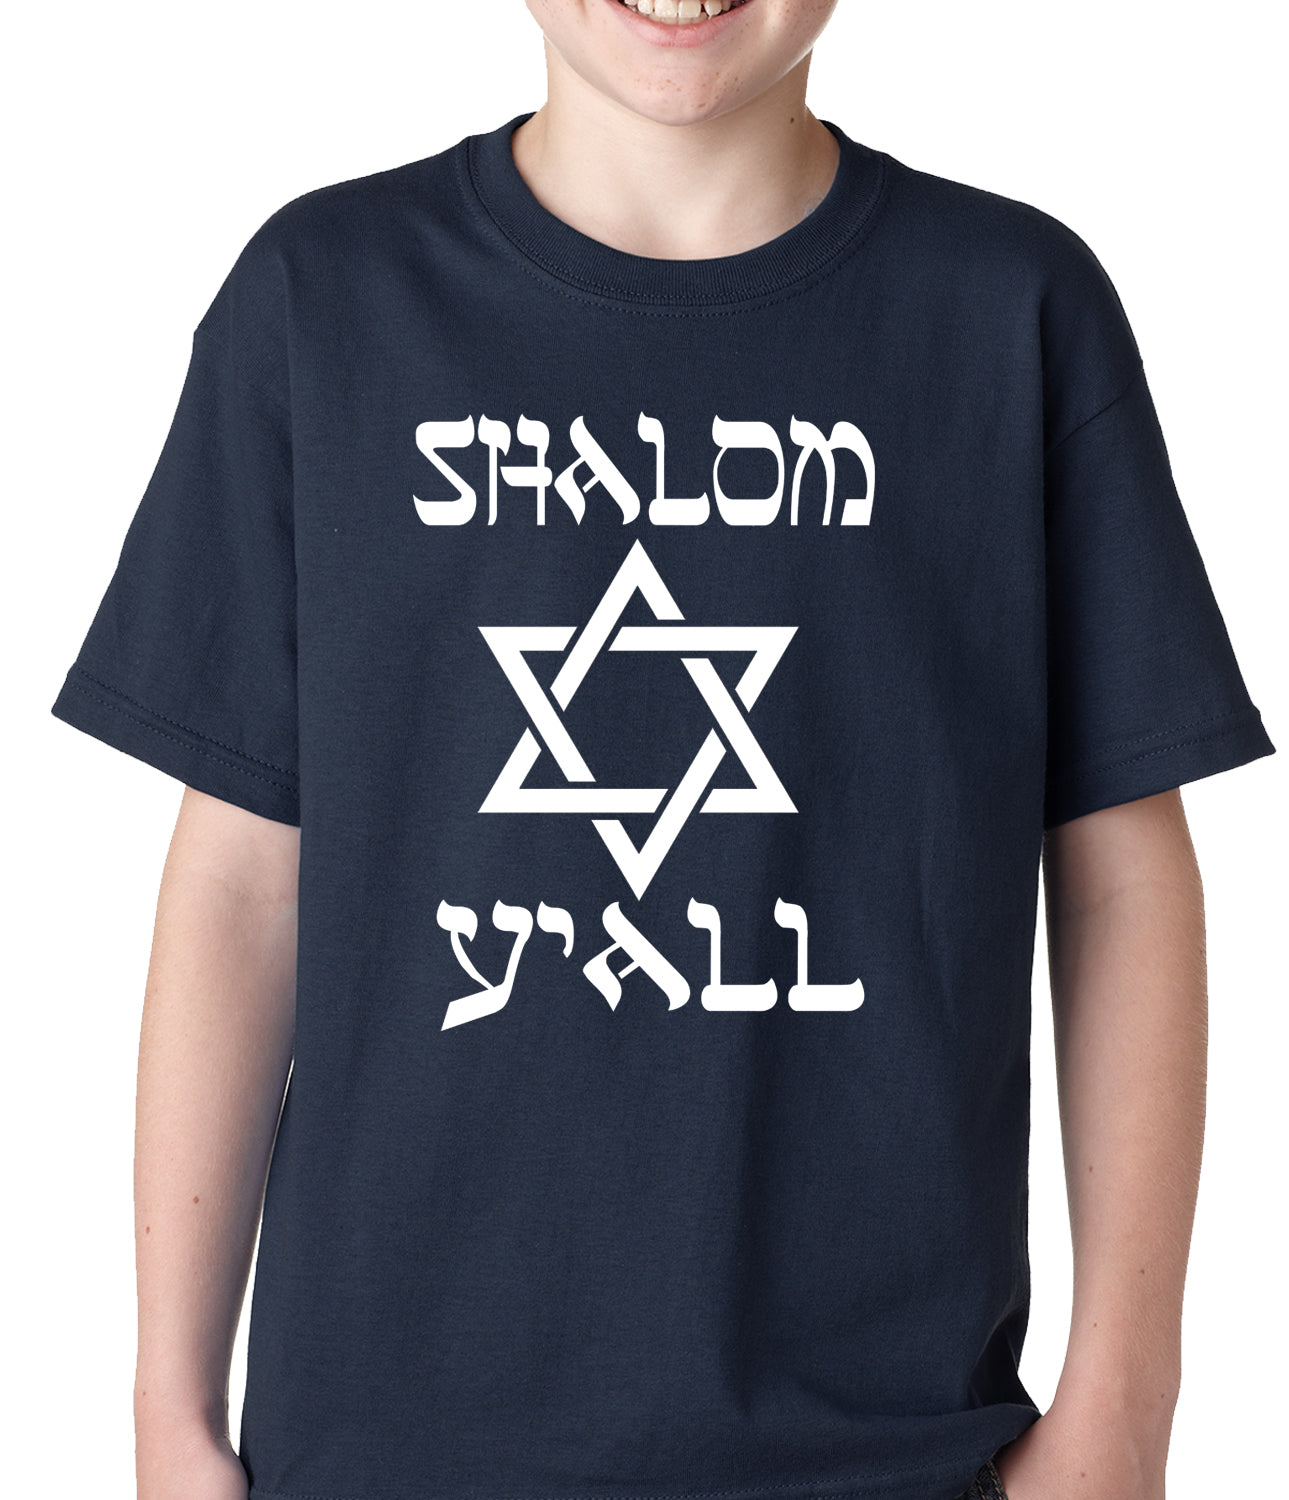 Shalom Y'all Kids T-shirt